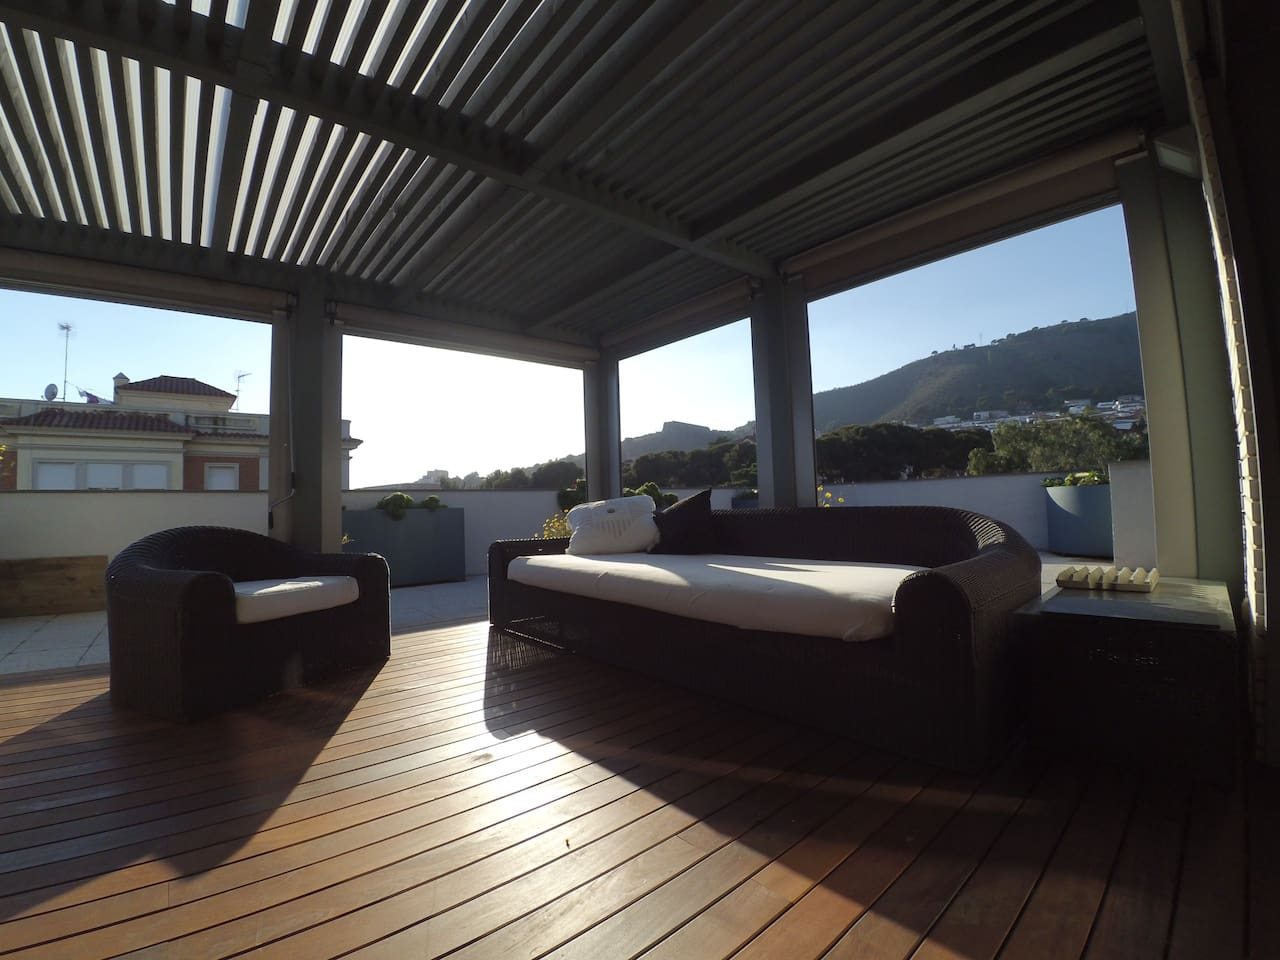 Chill out rooftop terrace with view to the mountains